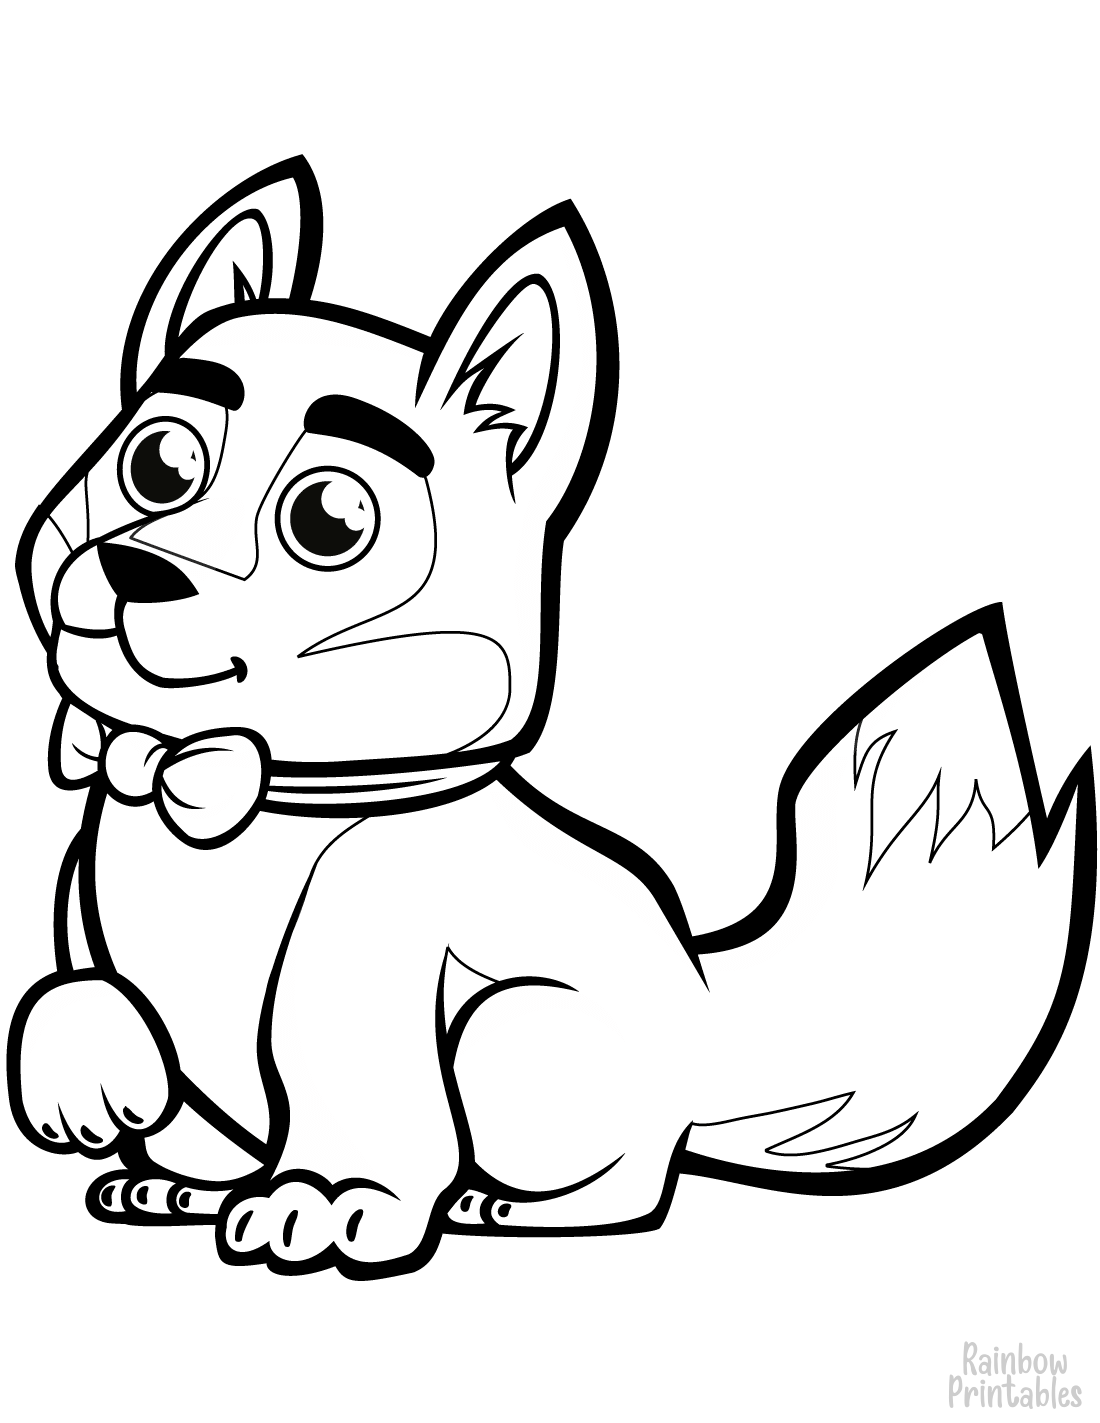 ADorable dog baby husky with a bowtie coloring page for little kids